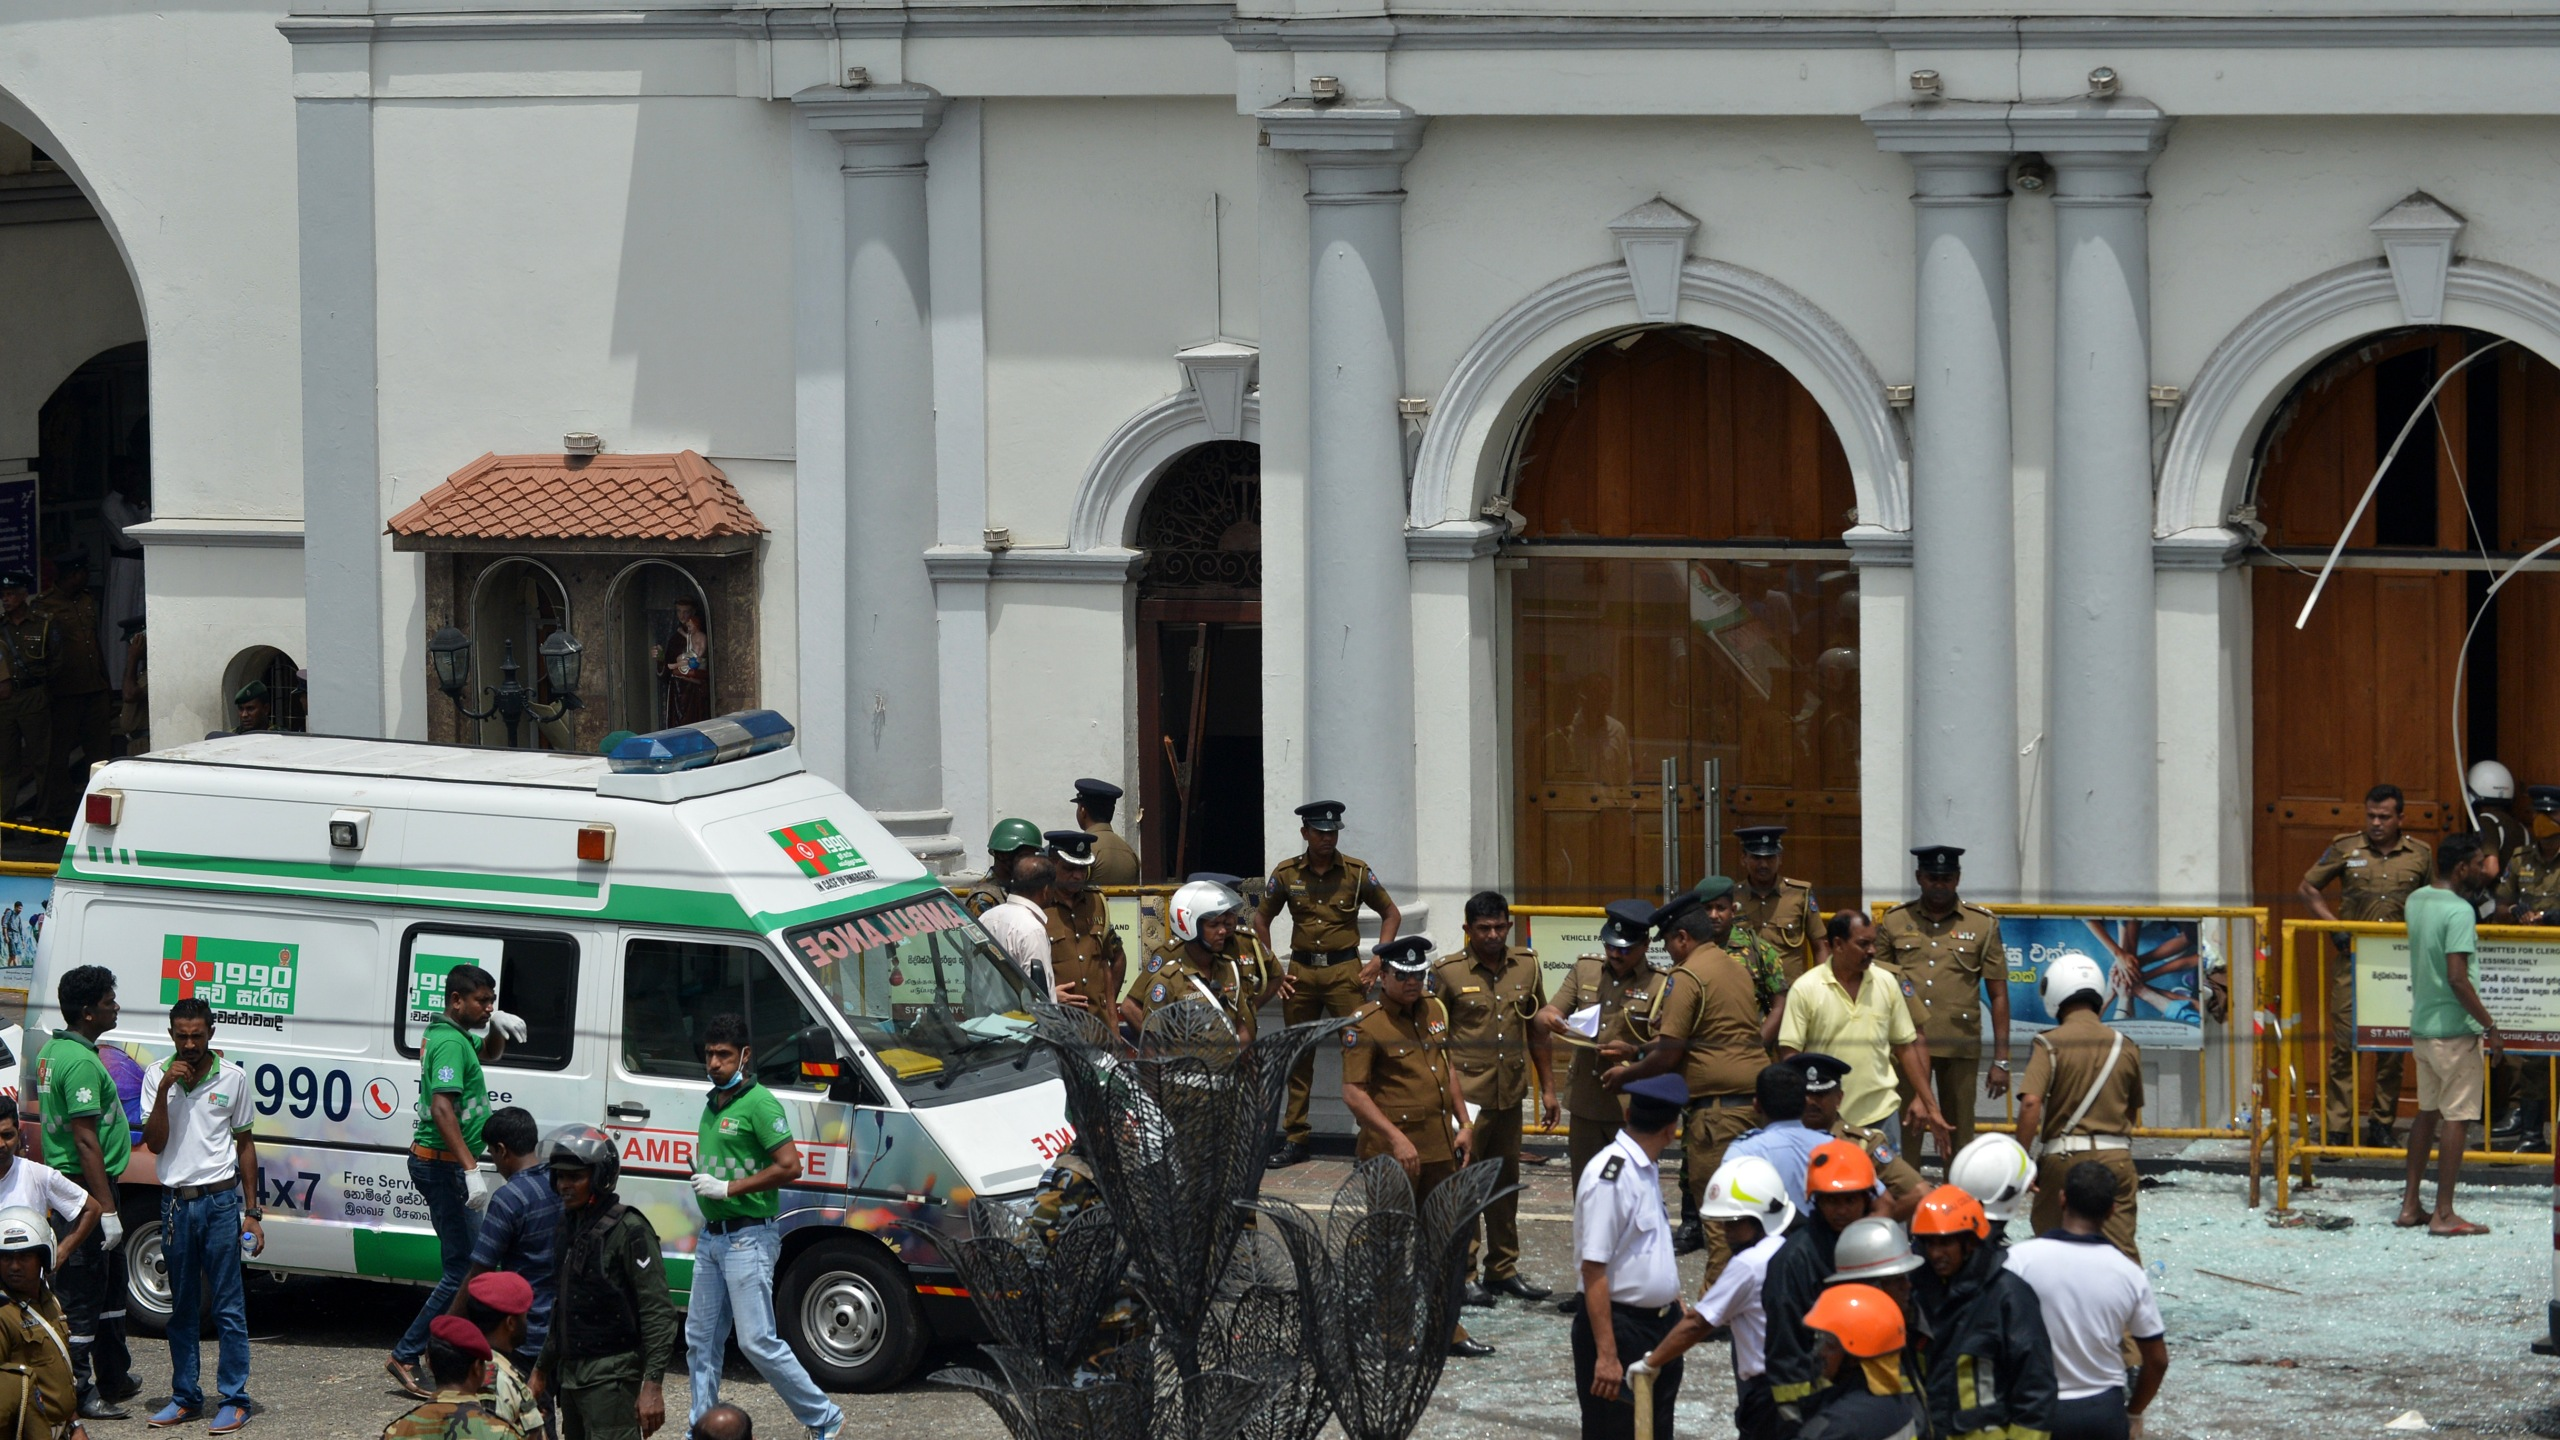 An ambulance is seen outside the church premises with gathered security personnel following a blast at the St. Anthony's Shrine in Kochchikade, Colombo on April 21, 2019. (Credit: Ishara S. Kodikara/AFP/Getty Images)